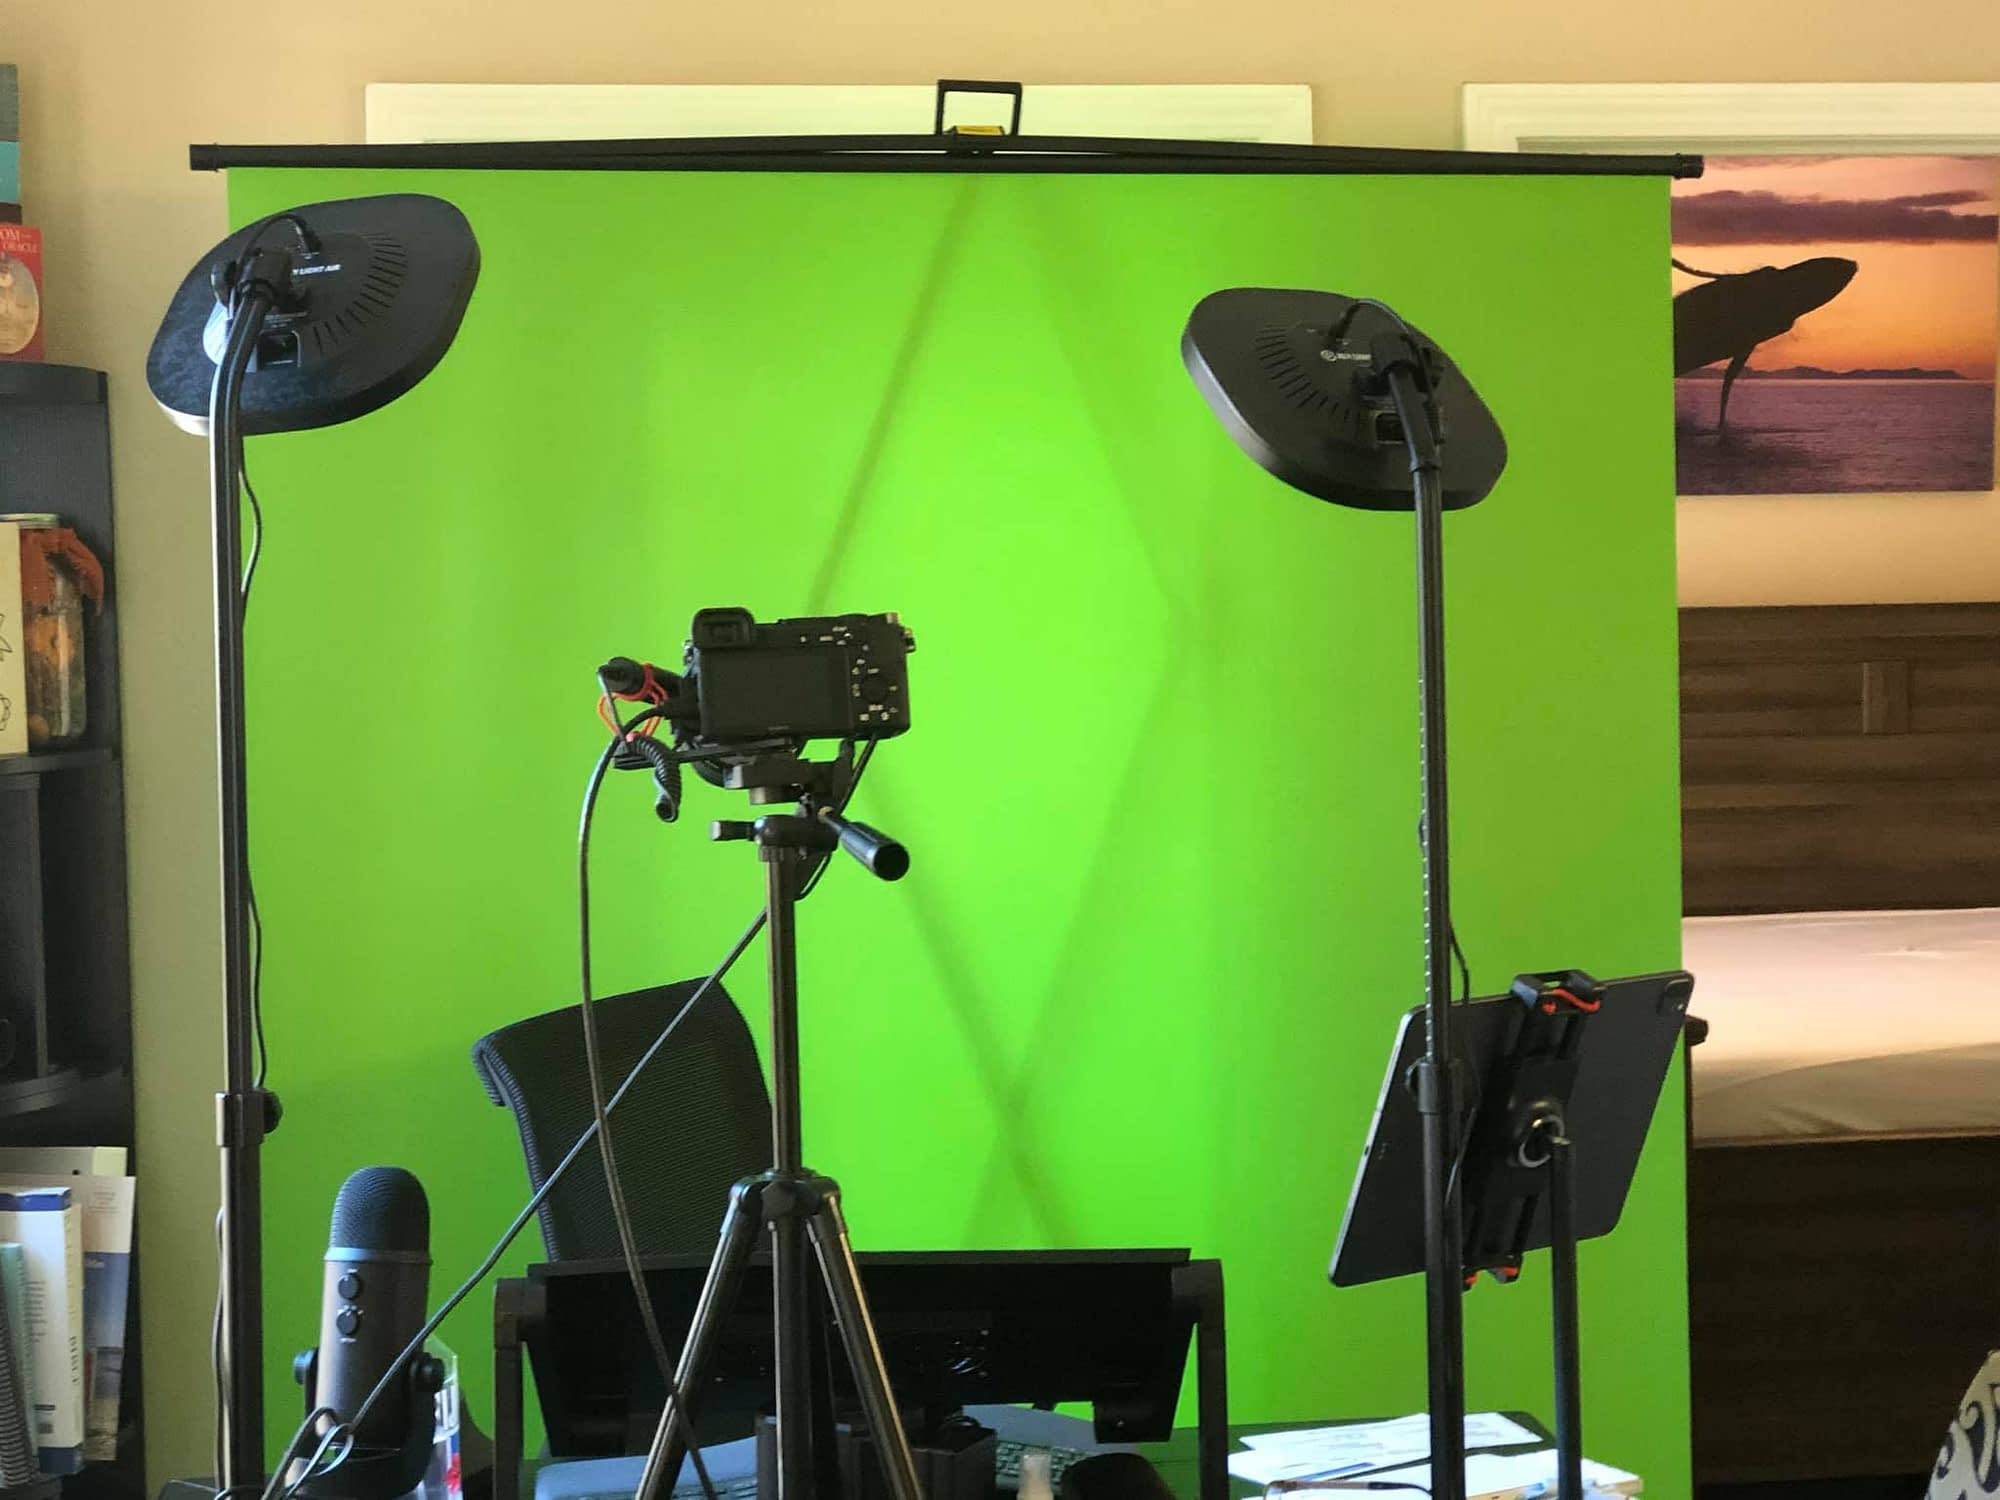 youtube studio with greenscreen, keylights, video camera, recording equipment